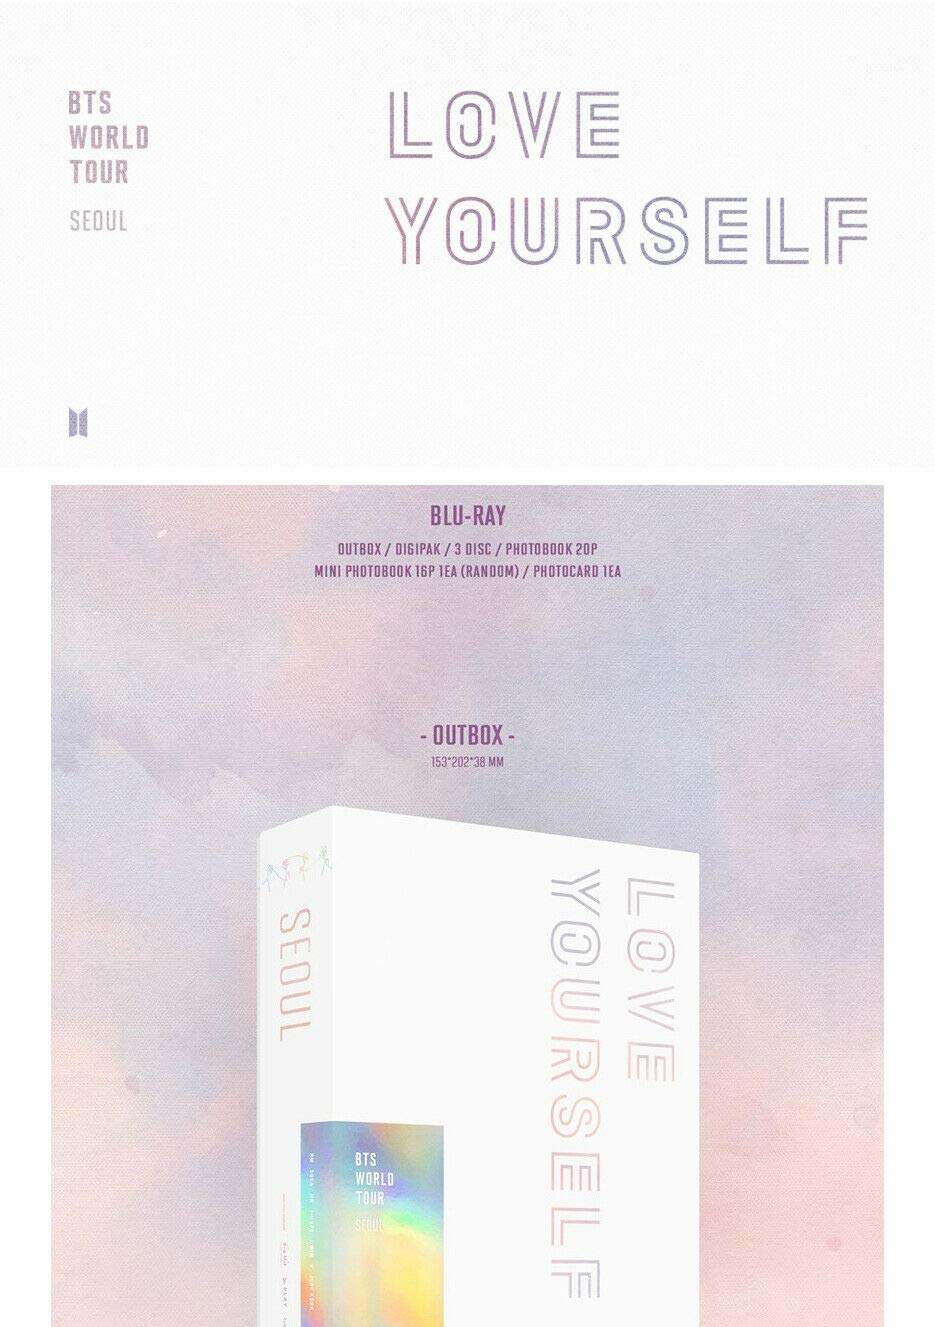 BTS WORLD TOUR LOVE YOURSELF IN SEOUL 3 CD+2ea P Book+CARD SEALED